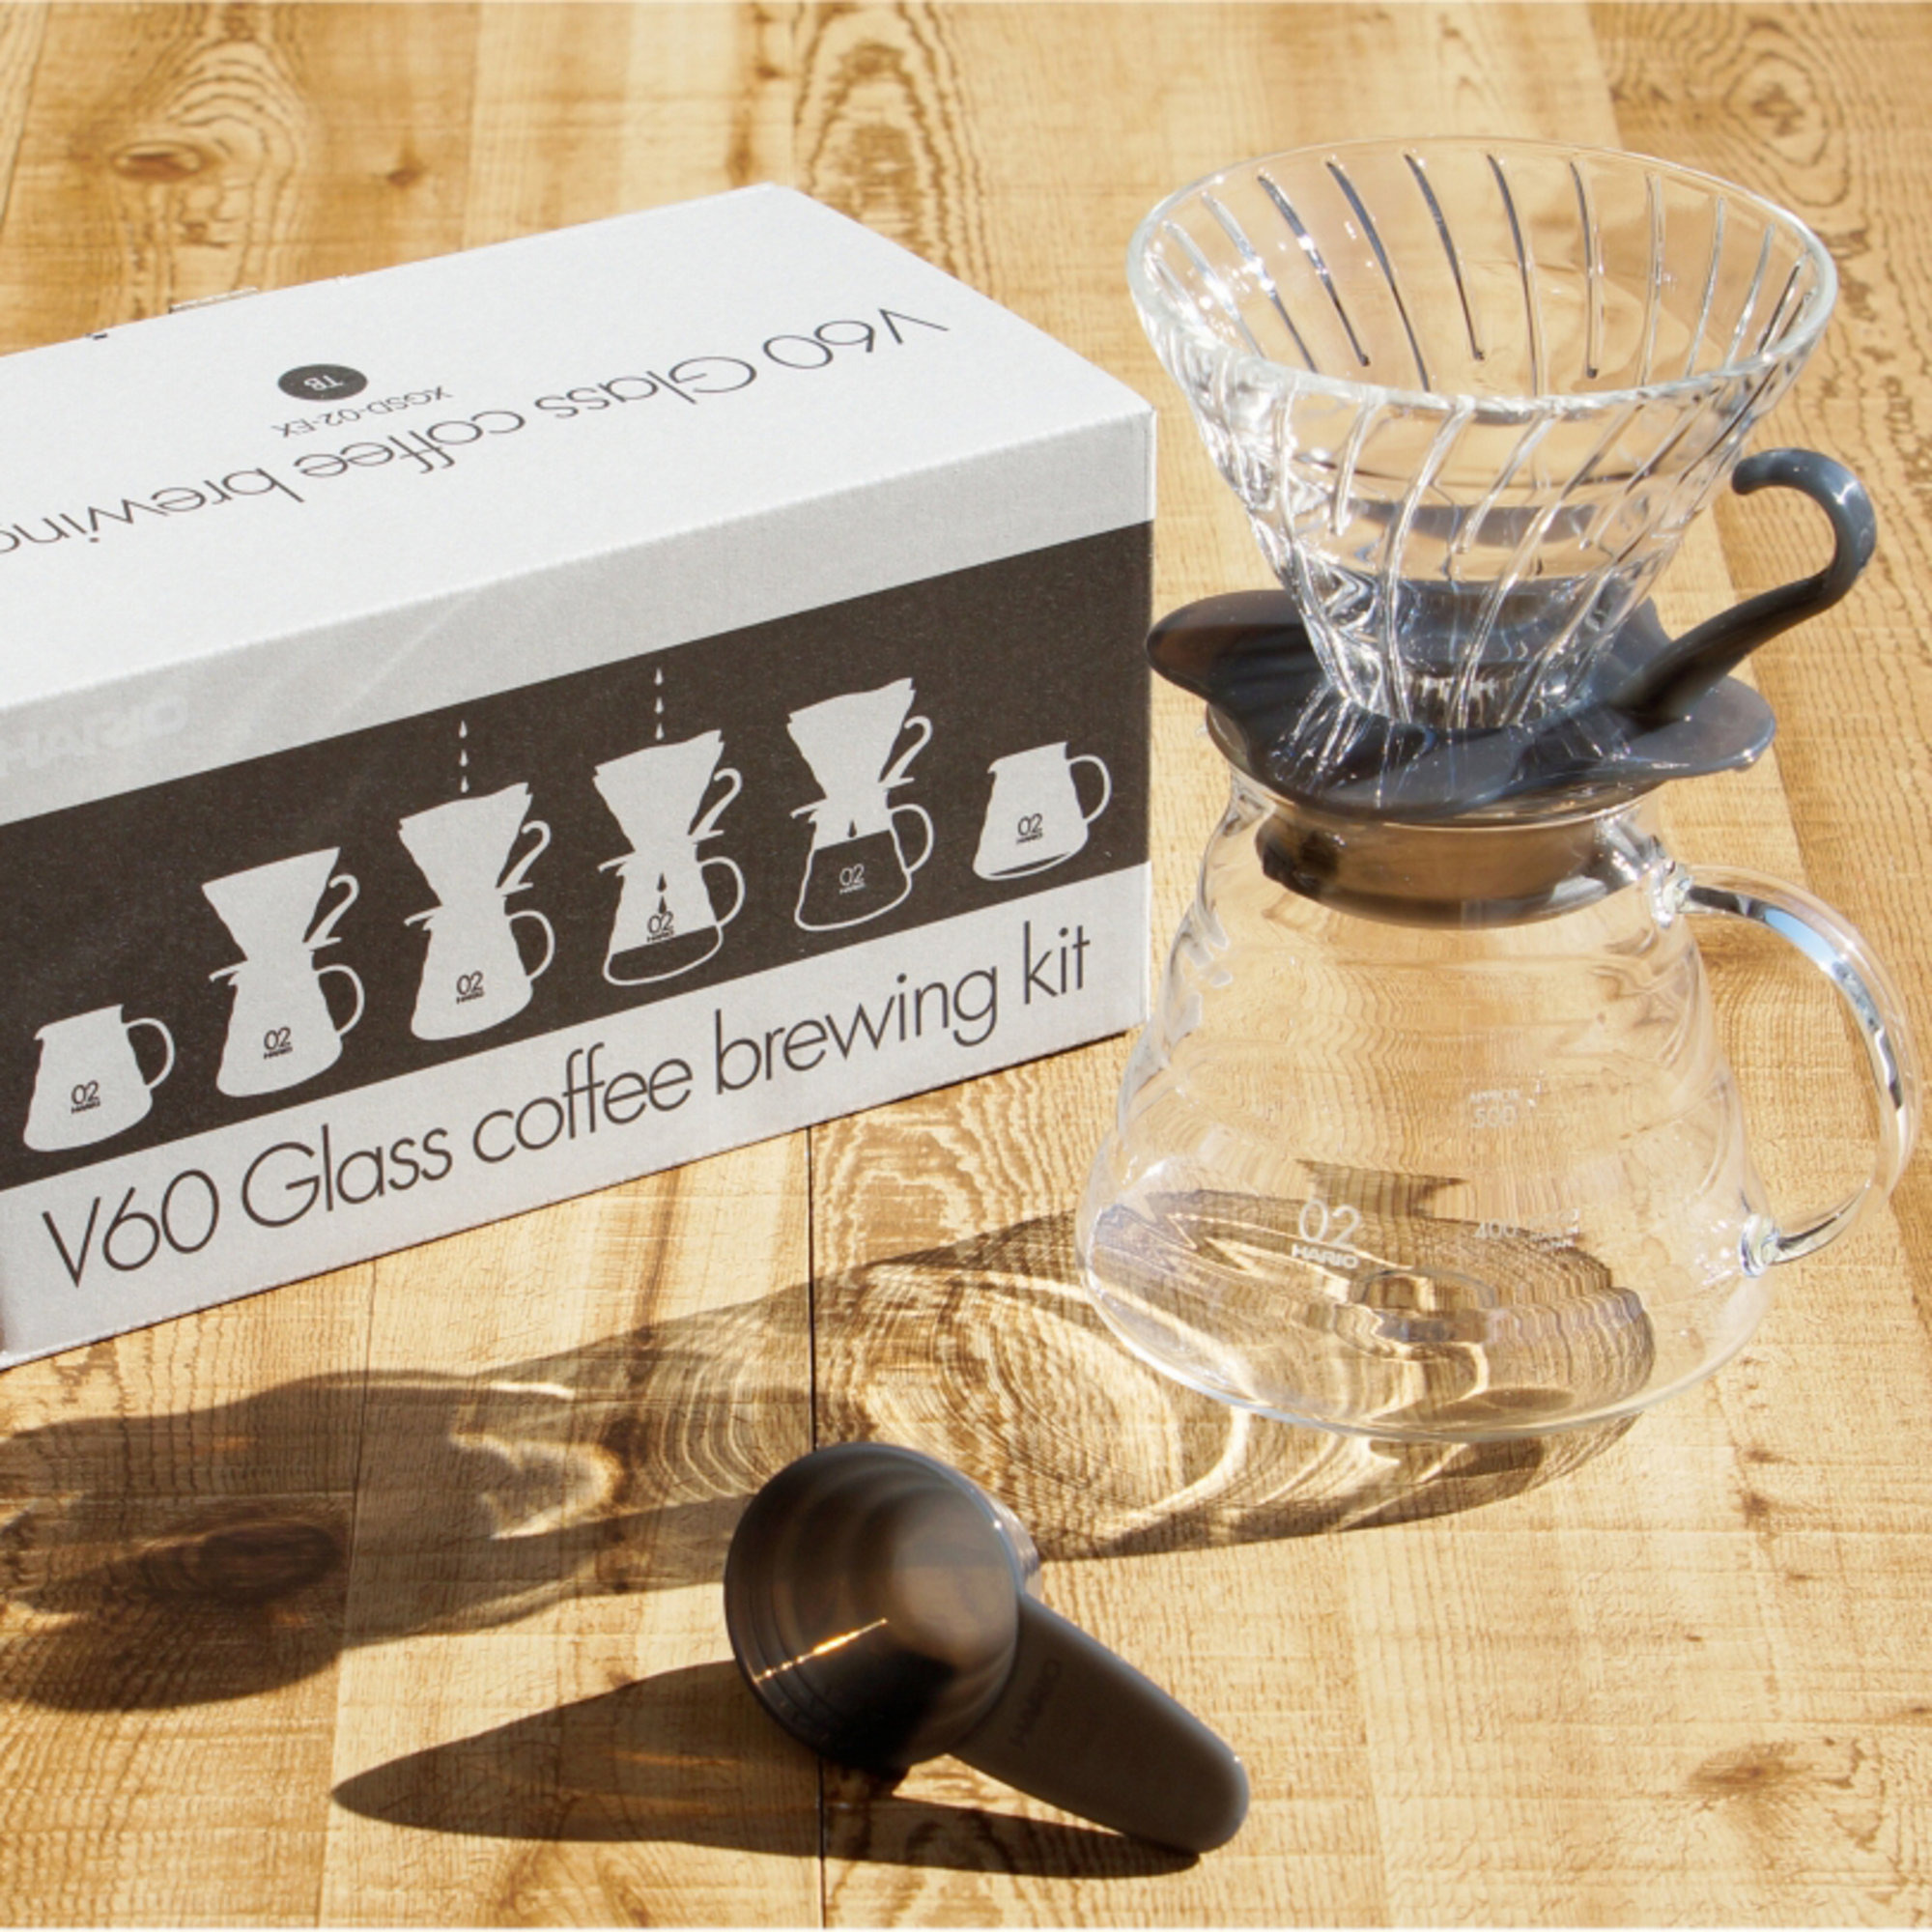 Hario Glass Coffee Brewing Kit